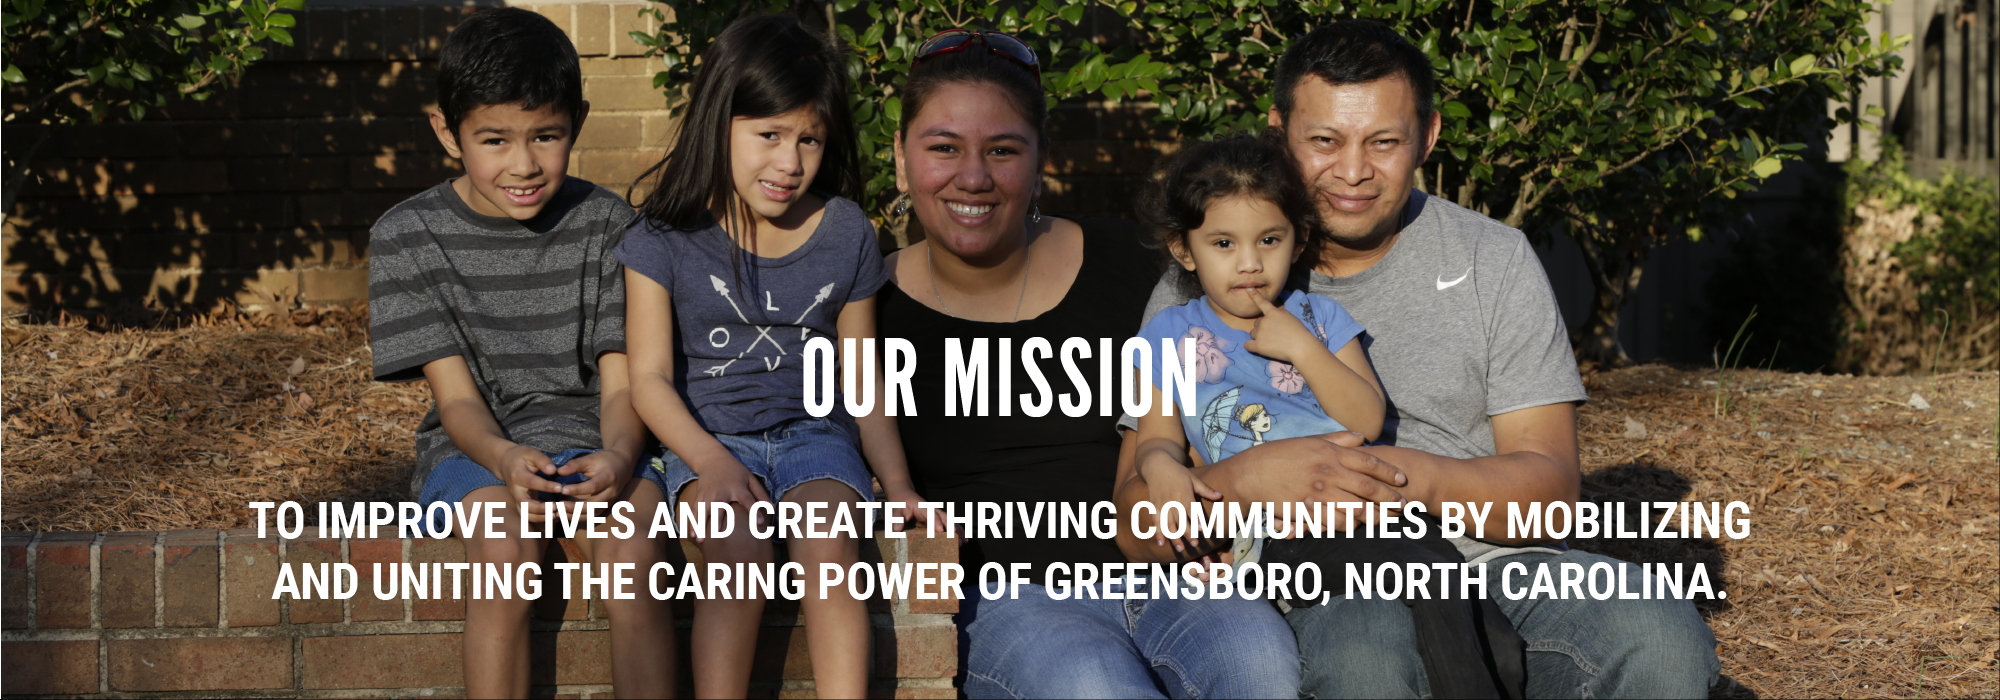 Our Mission | United Way of Greater Greensboro